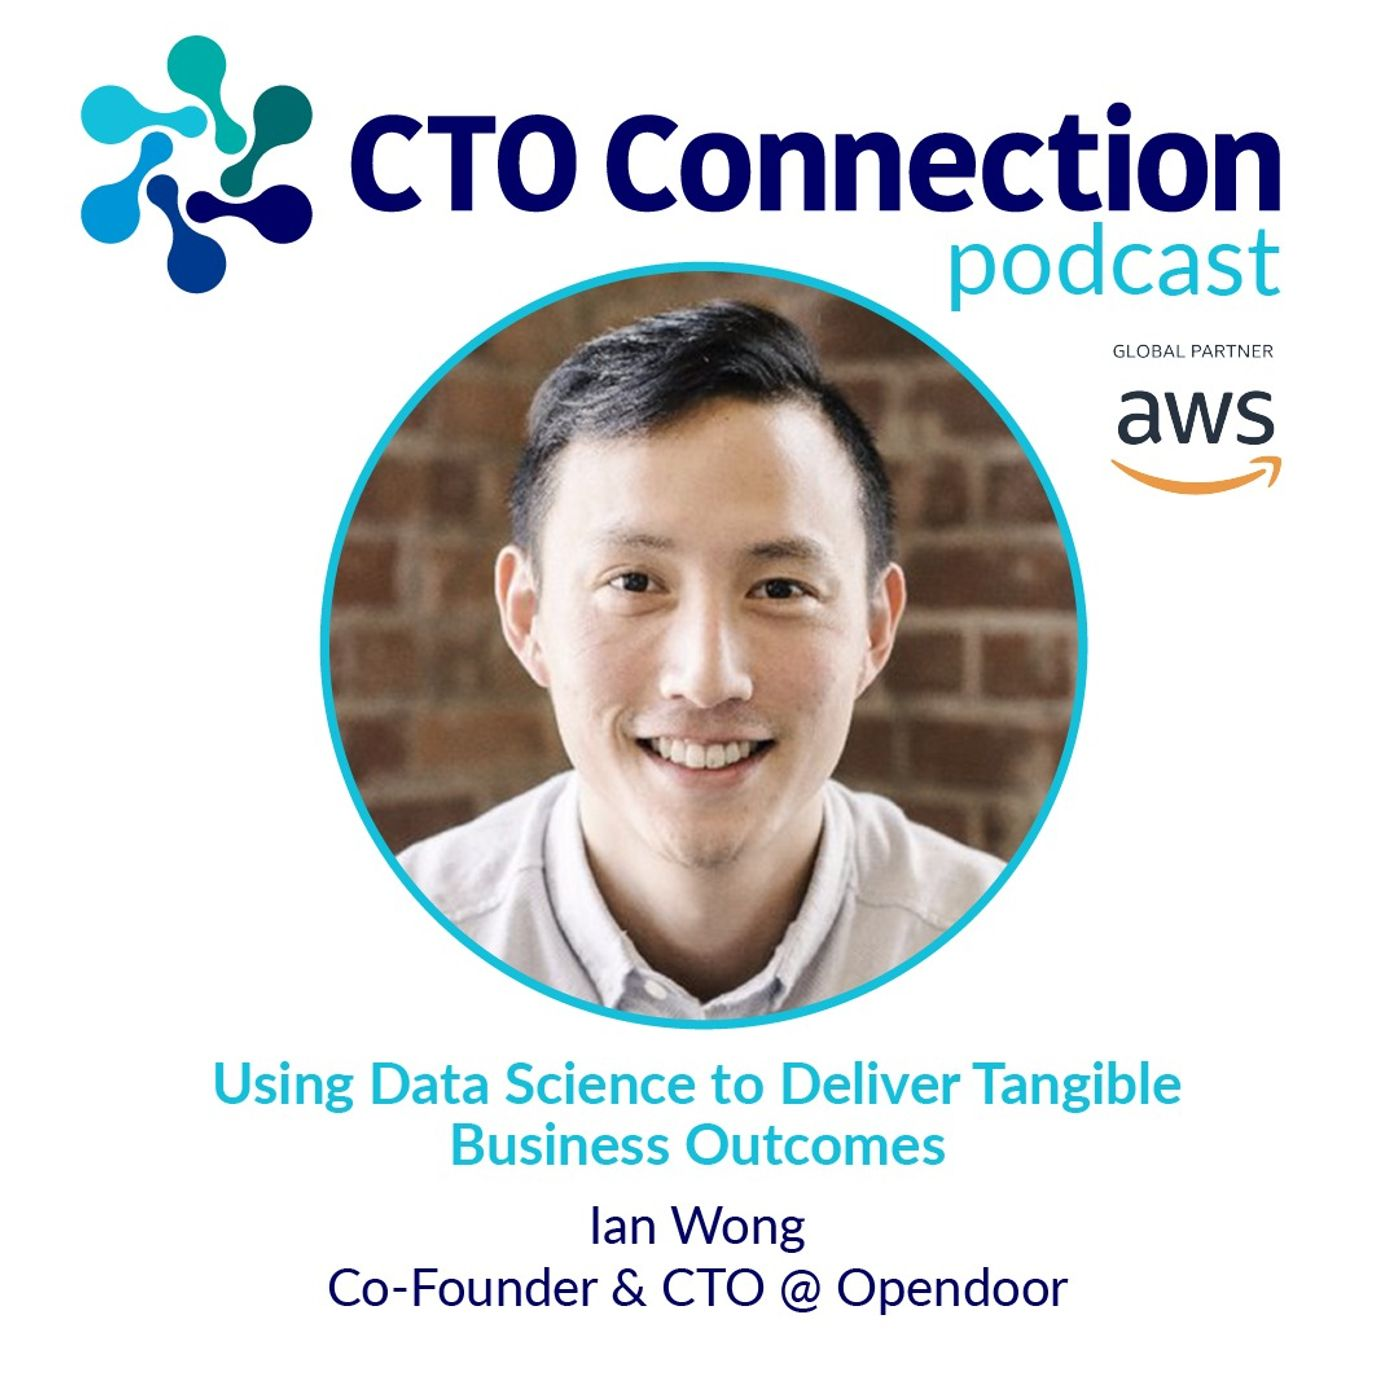 Using Data Science to Deliver Tangible Business Outcomes with Ian Wong